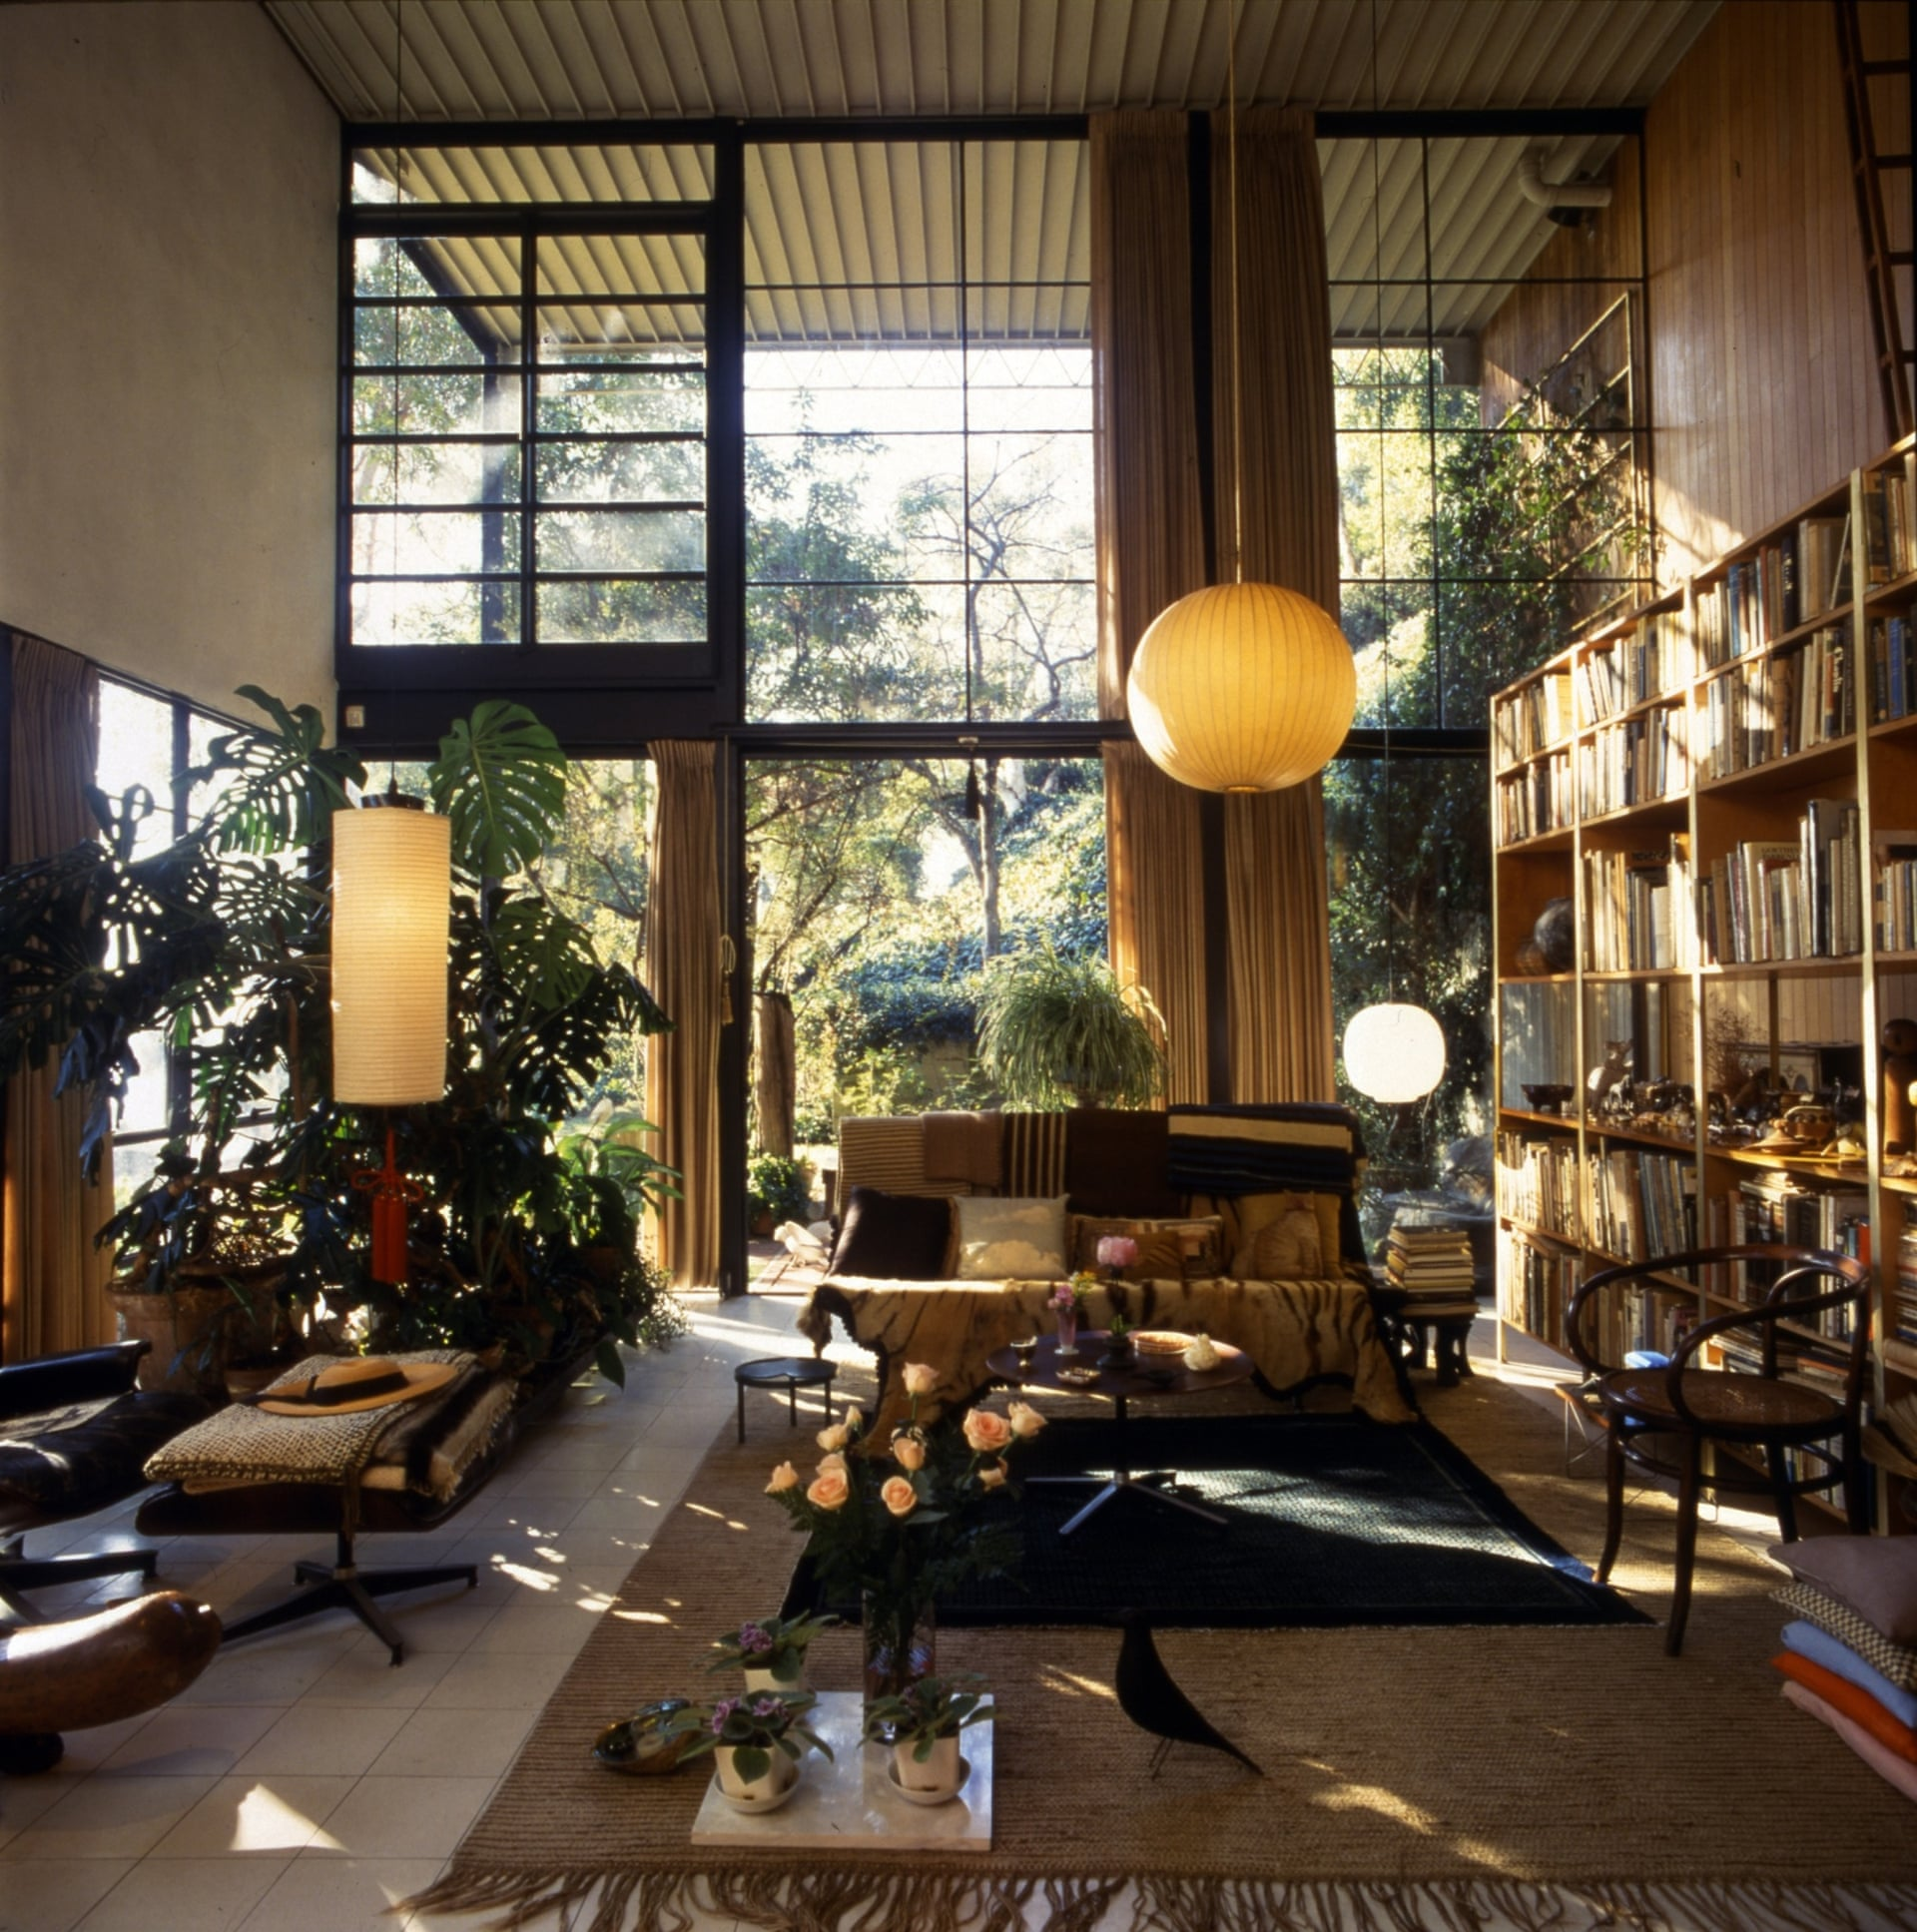 http://www.theguardian.com/lifeandstyle/gallery/2015/oct/17/the-world-of-charles-and-ray- eames-in-pictures